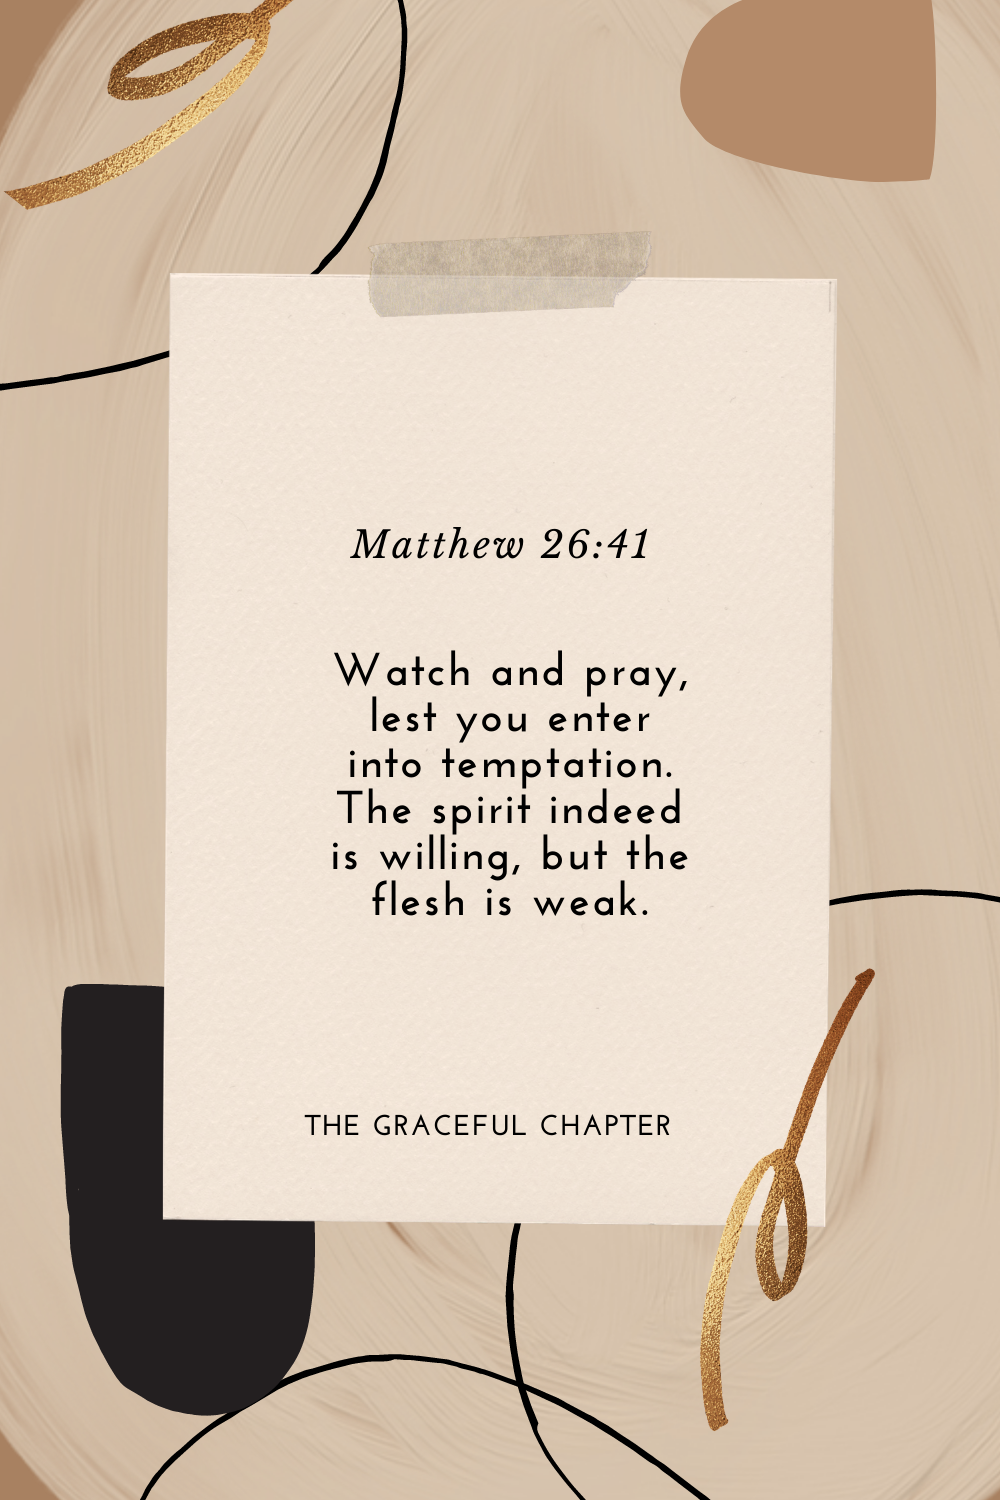 Watch and pray, lest you enter into temptation. The spirit indeed is willing, but the flesh is weak. Matthew 26:41